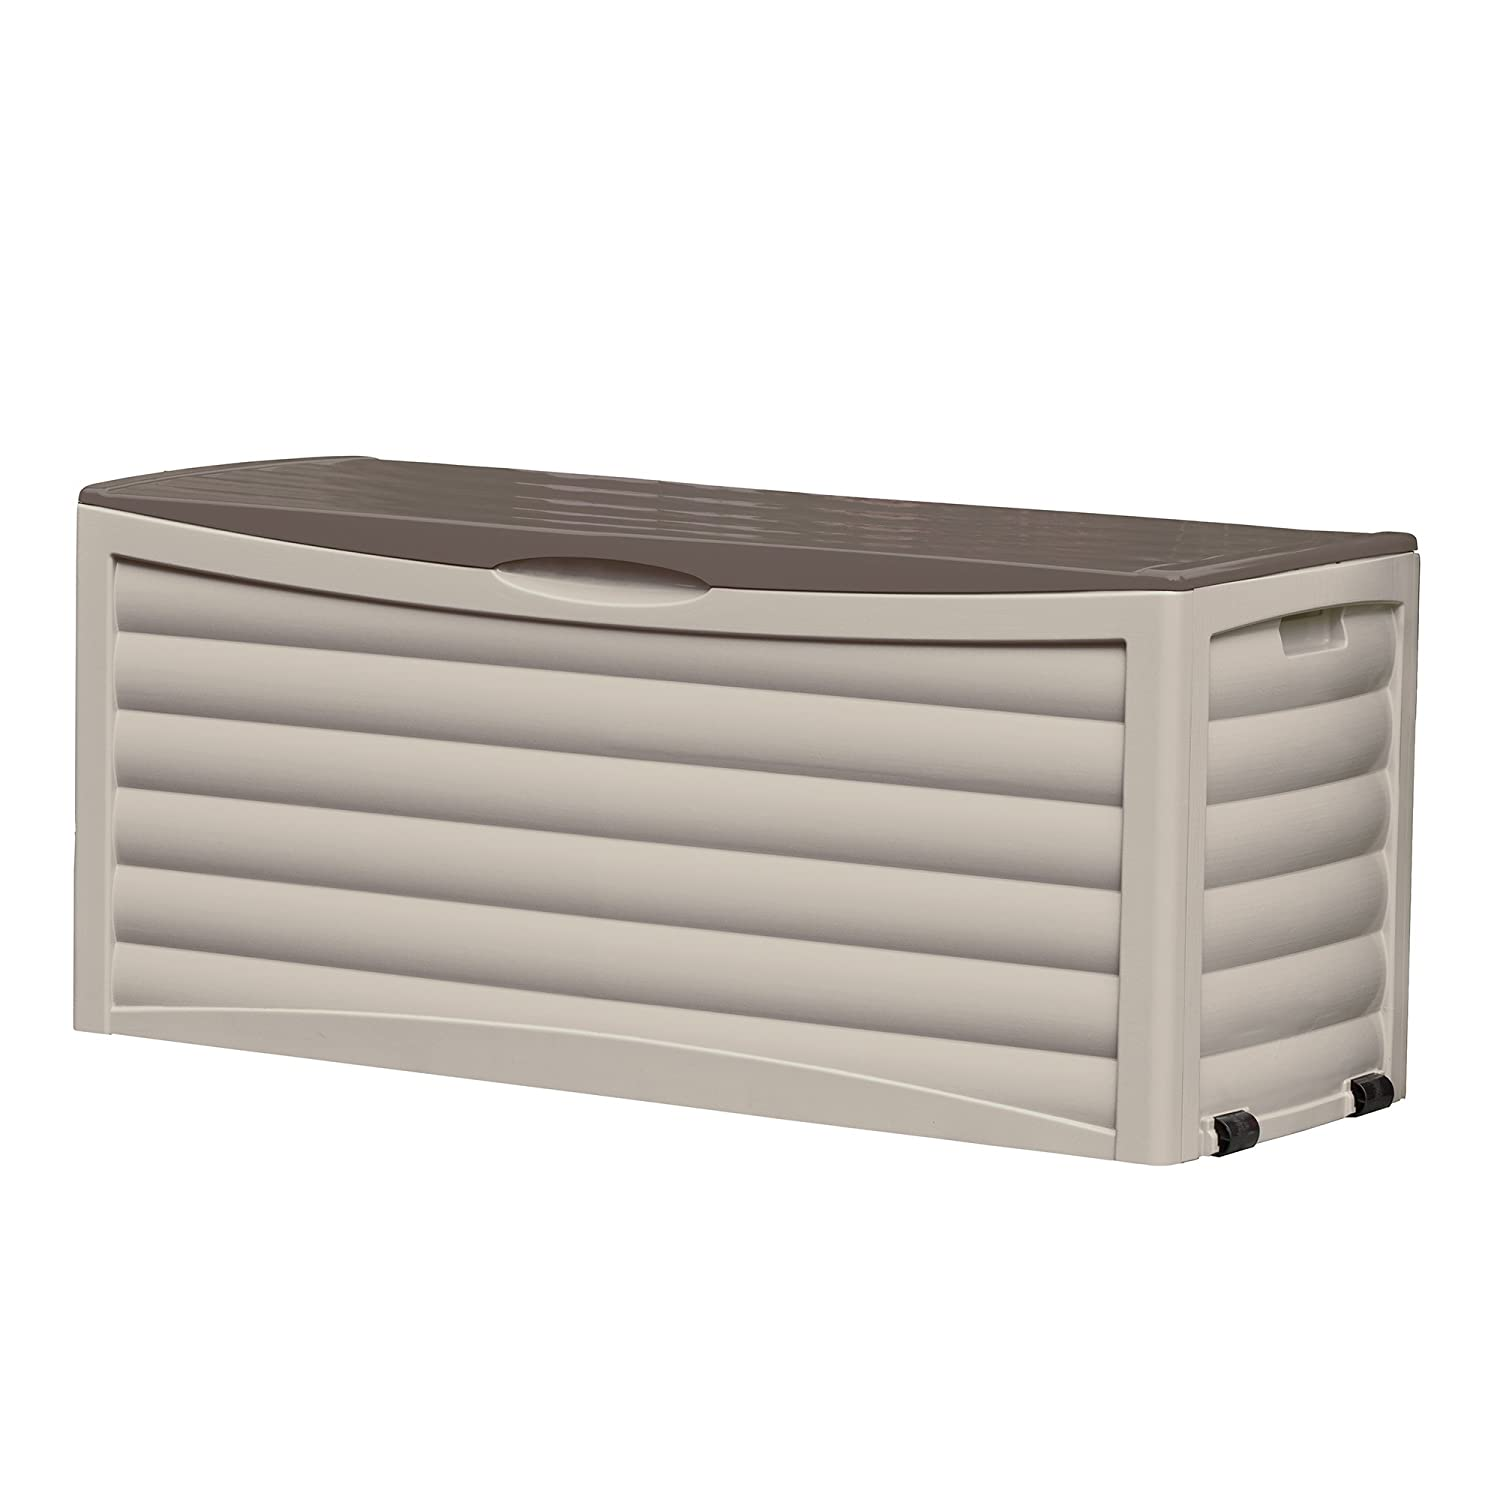 Suncast Resin 103 Gallon Large Patio Storage Box with Wheels - Outdoor Bin Stores Tools, Accessories and Toys - Store Items on Deck, Patio, Backyard - Taupe